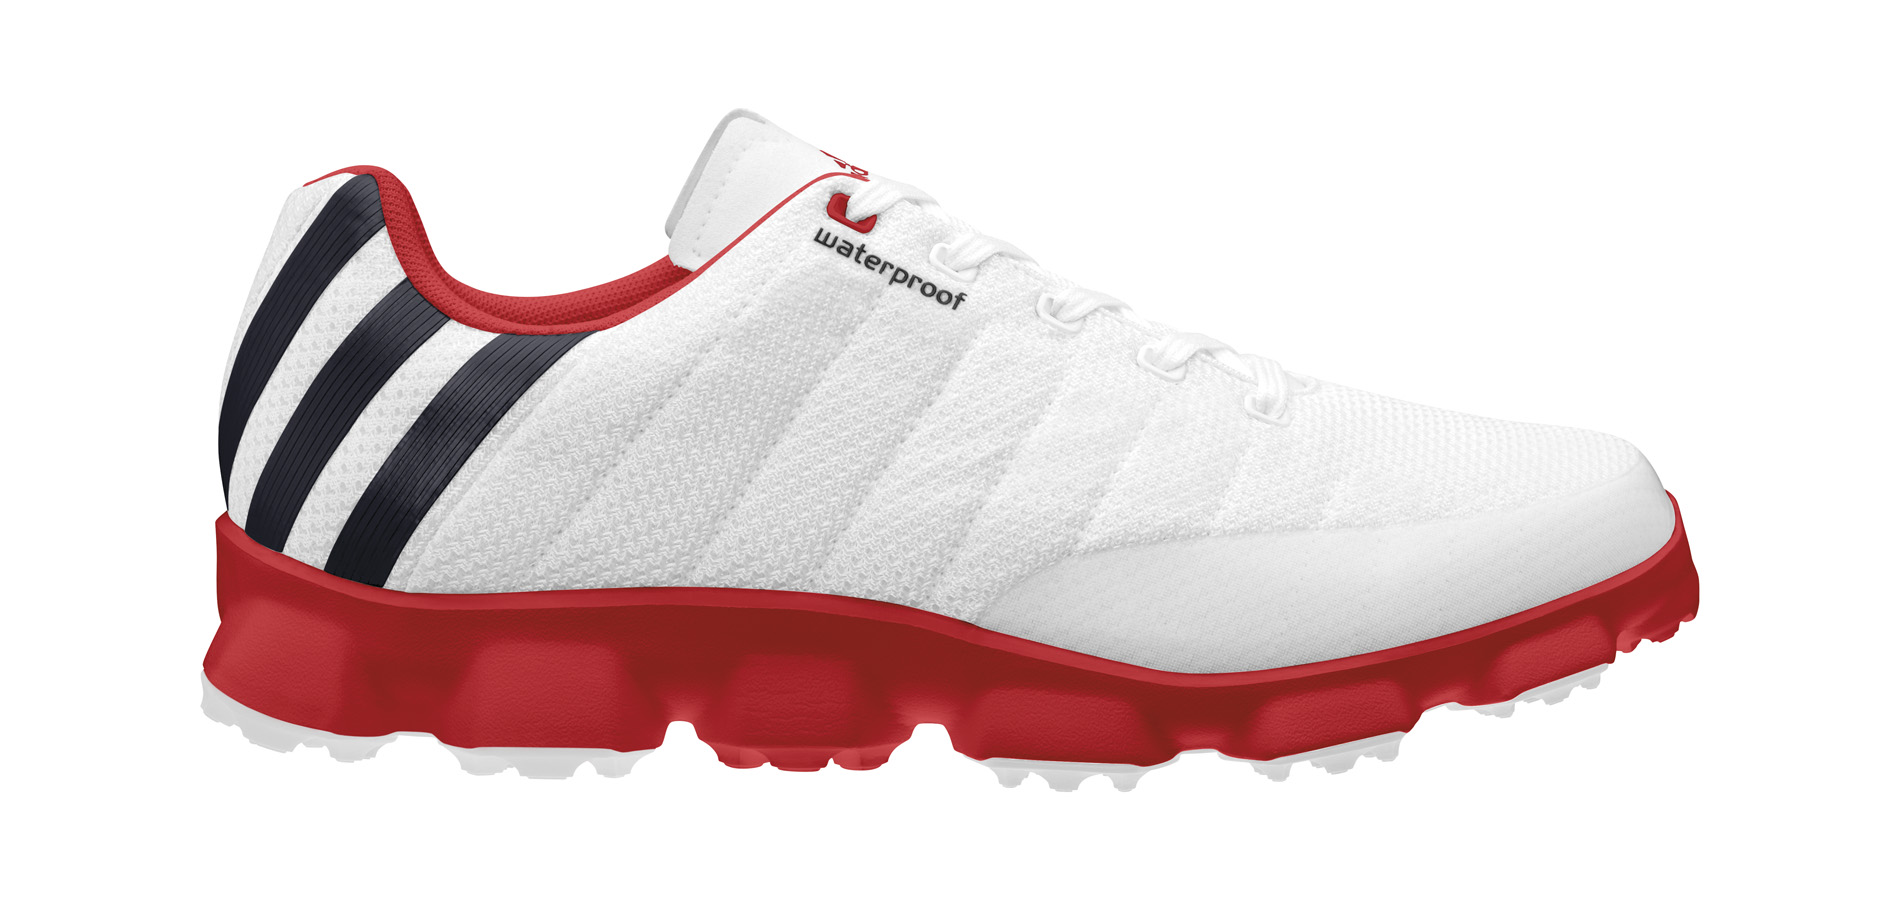 Adidas Crossflex Golf Shoes